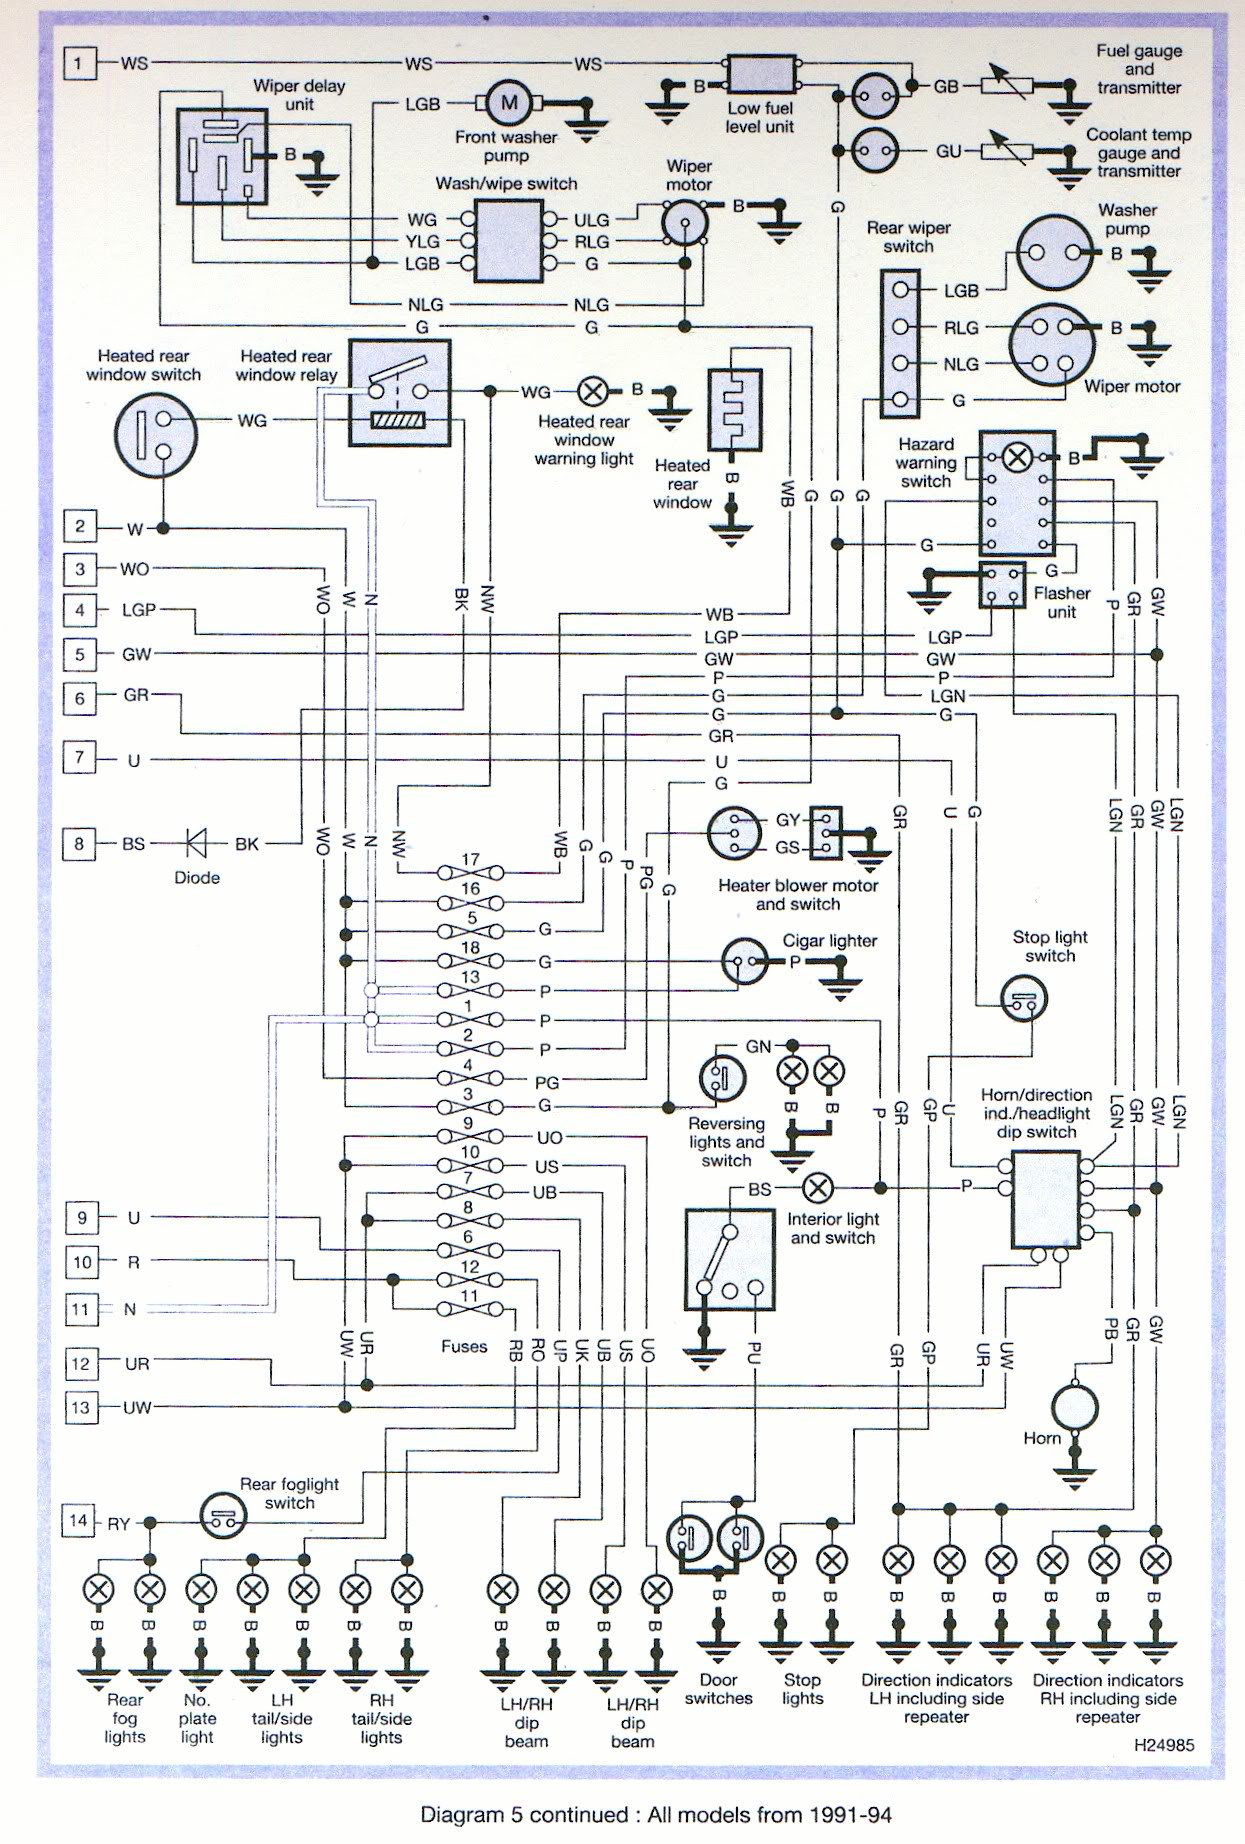 Schema electrique discovery td5